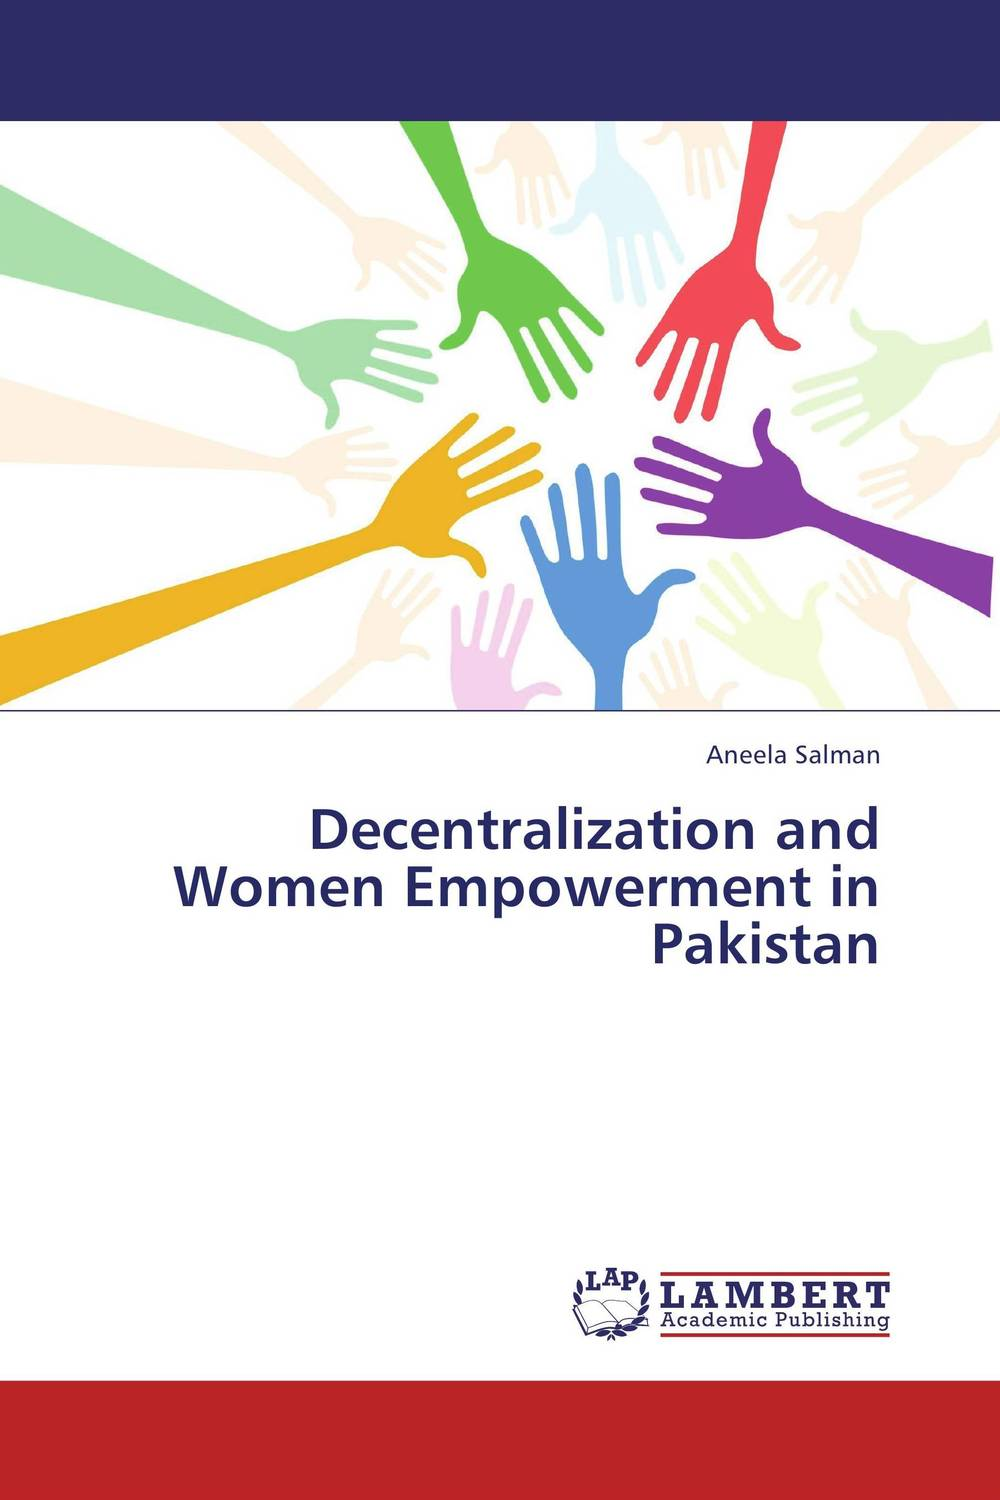 Decentralization and Women Empowerment in Pakistan